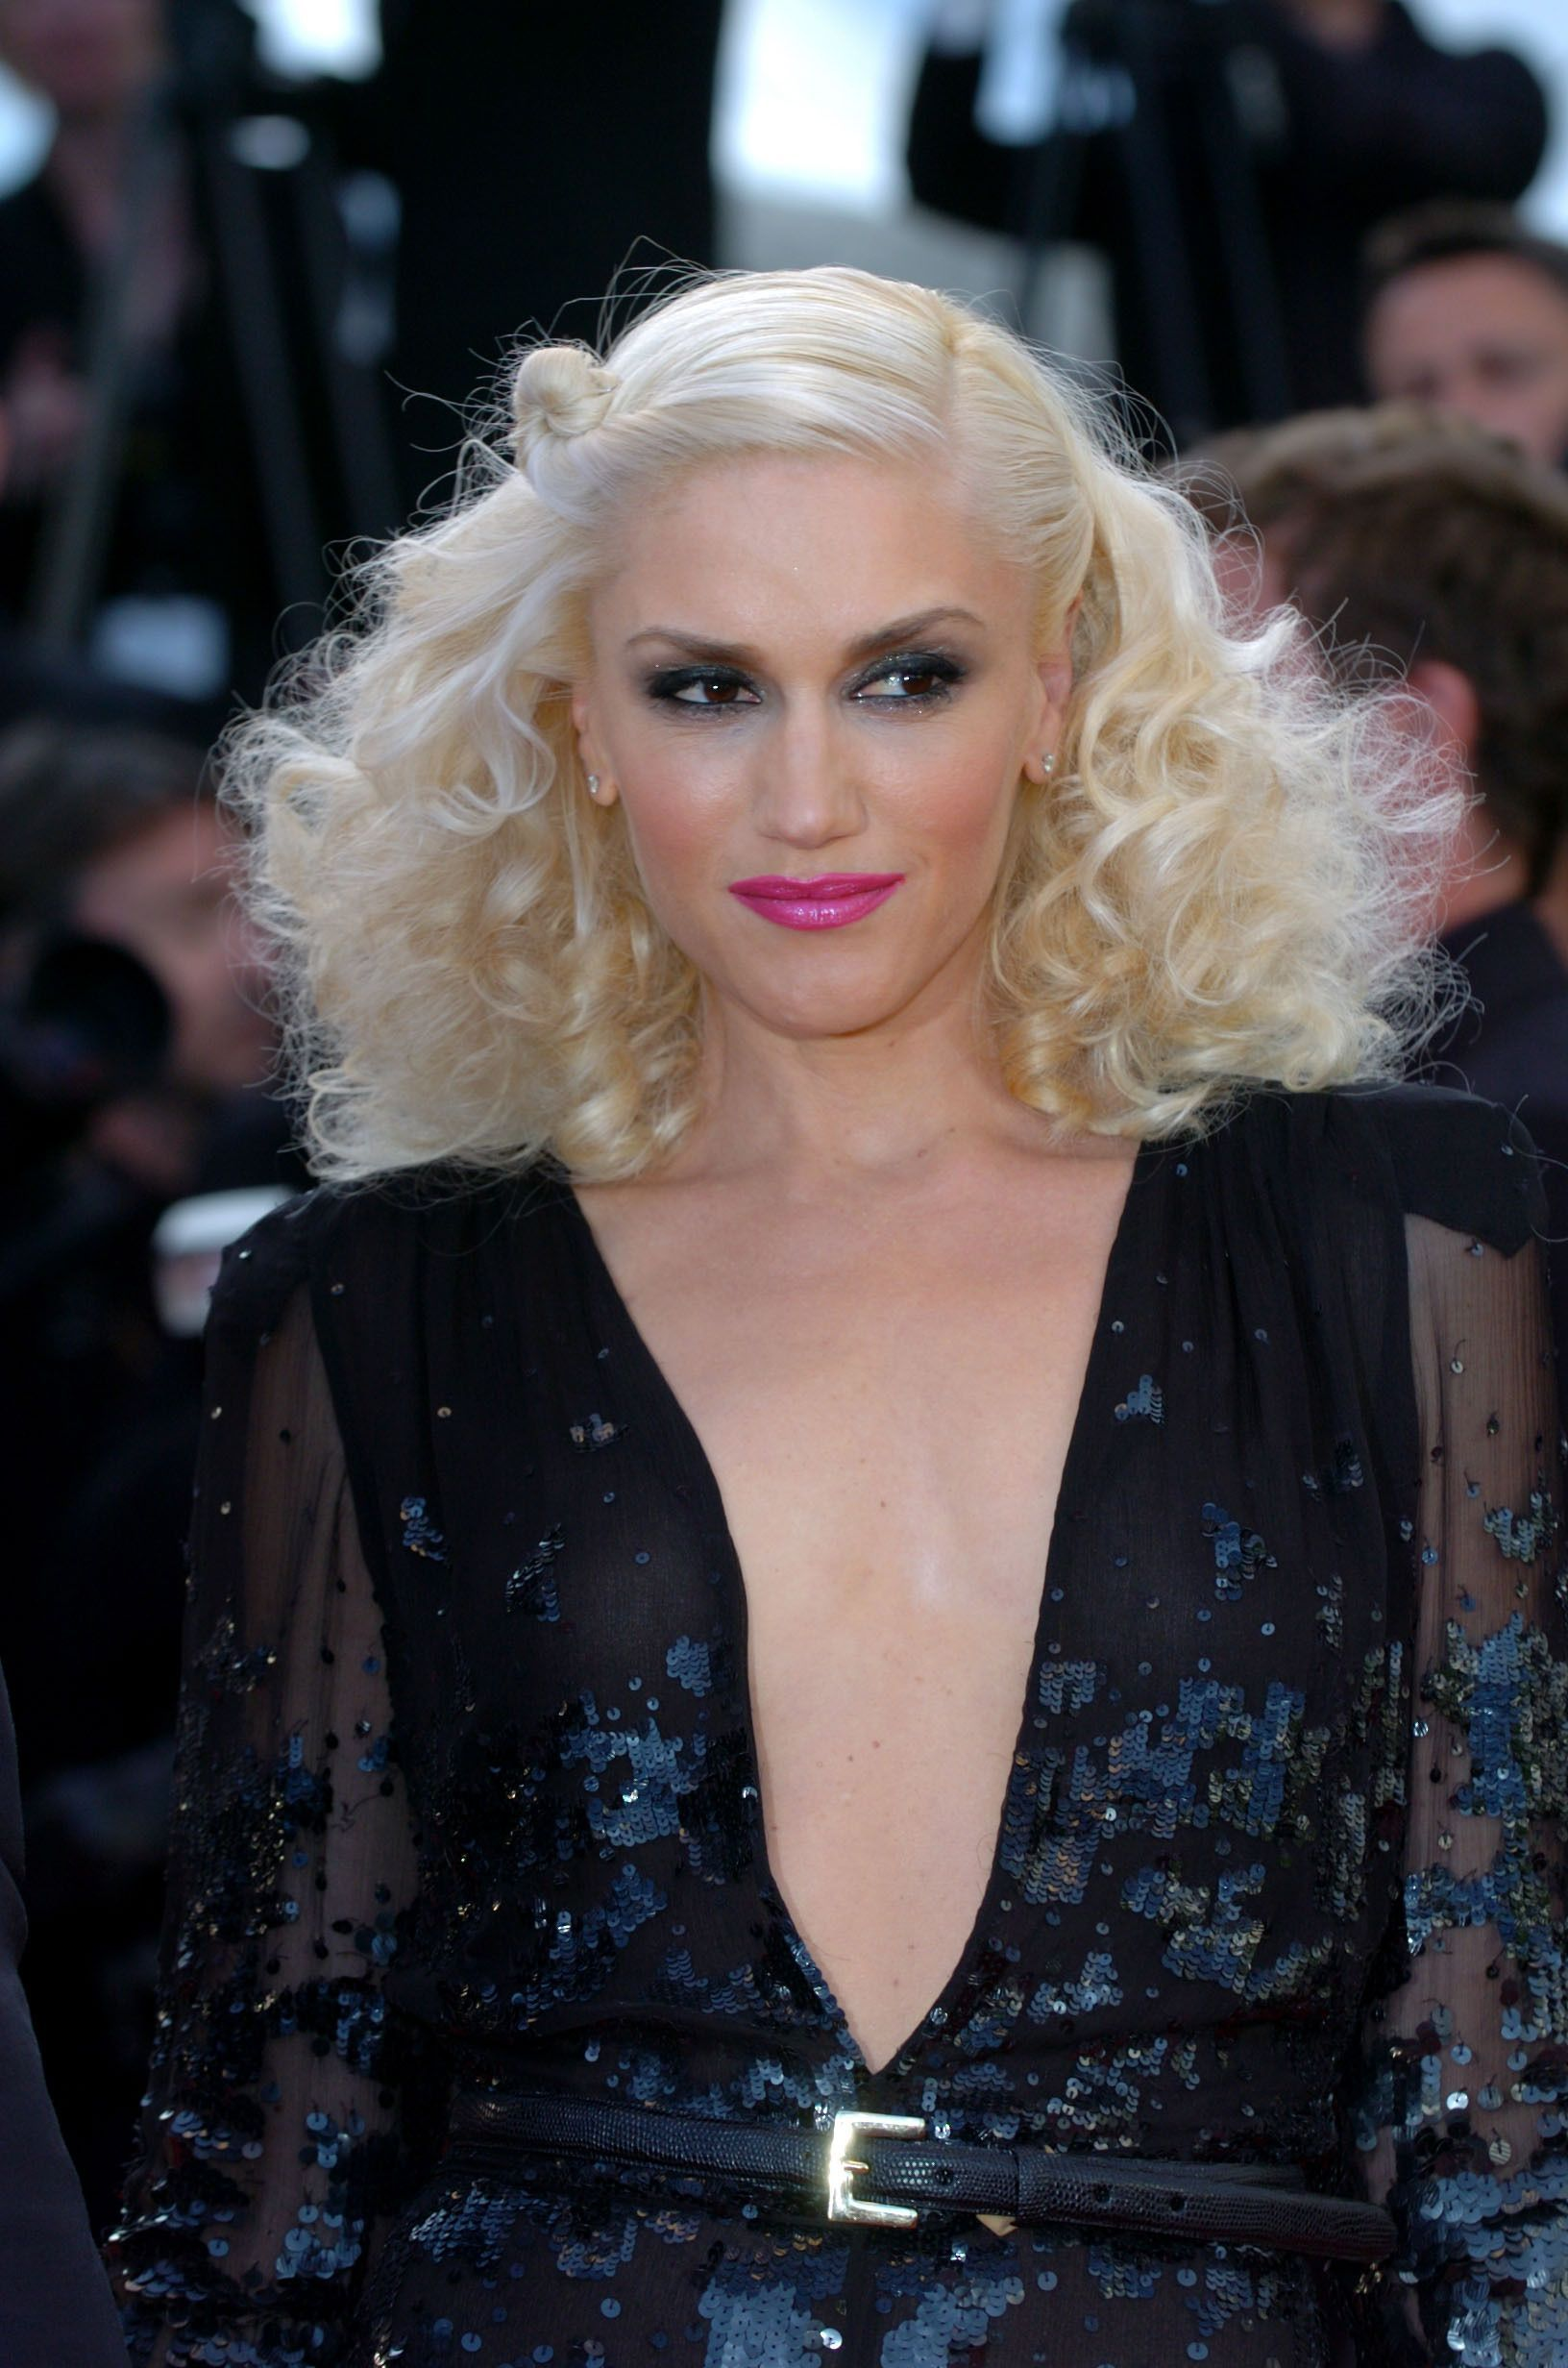 How To Hairstyle Your Short Hair With Disco Hair Ideas The Fro